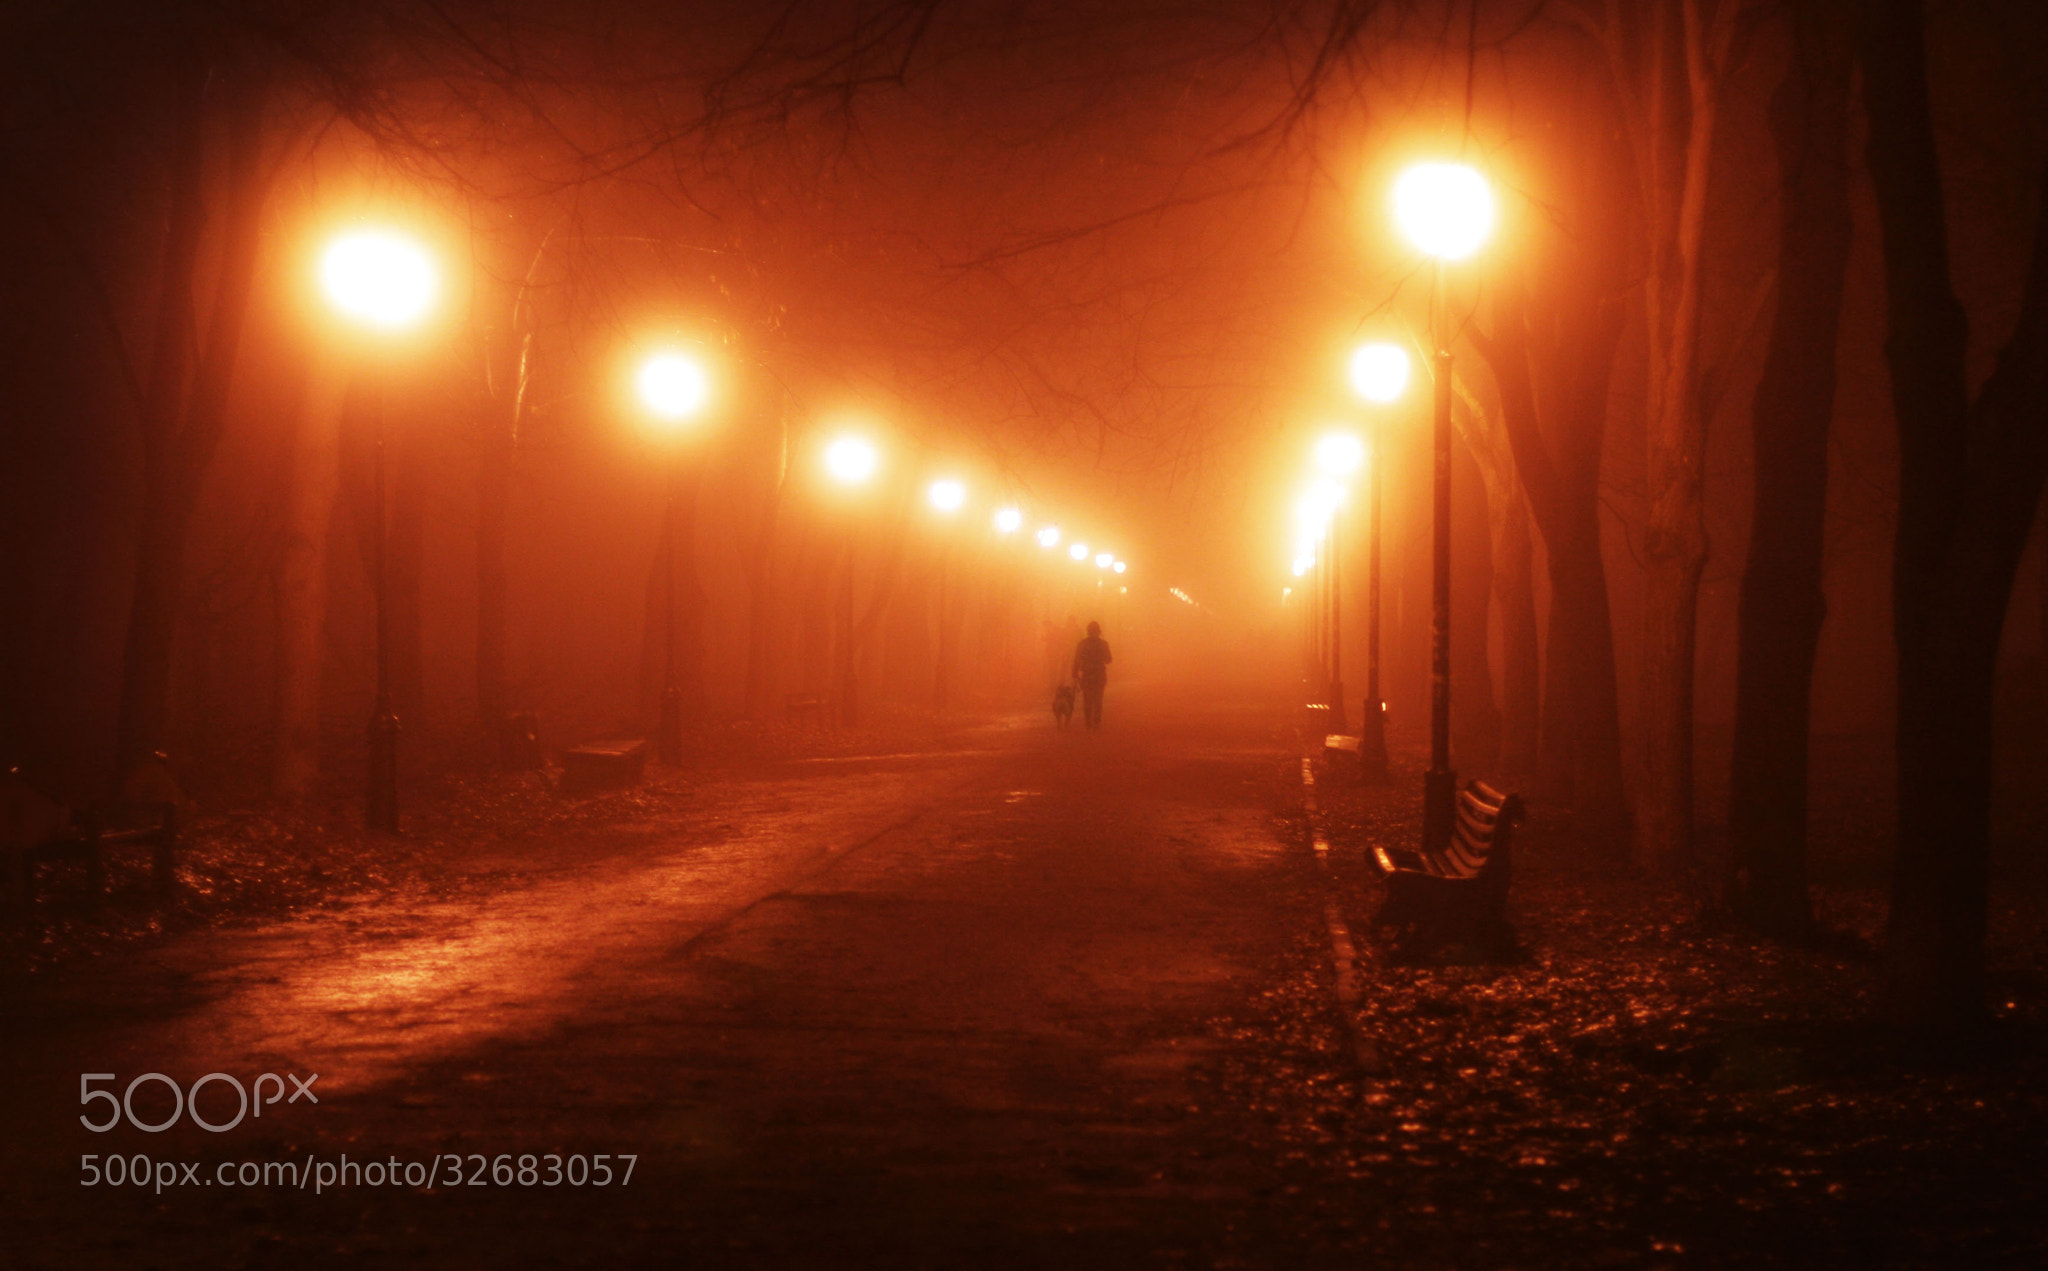 Photograph Untitled by igor kostromin on 500px